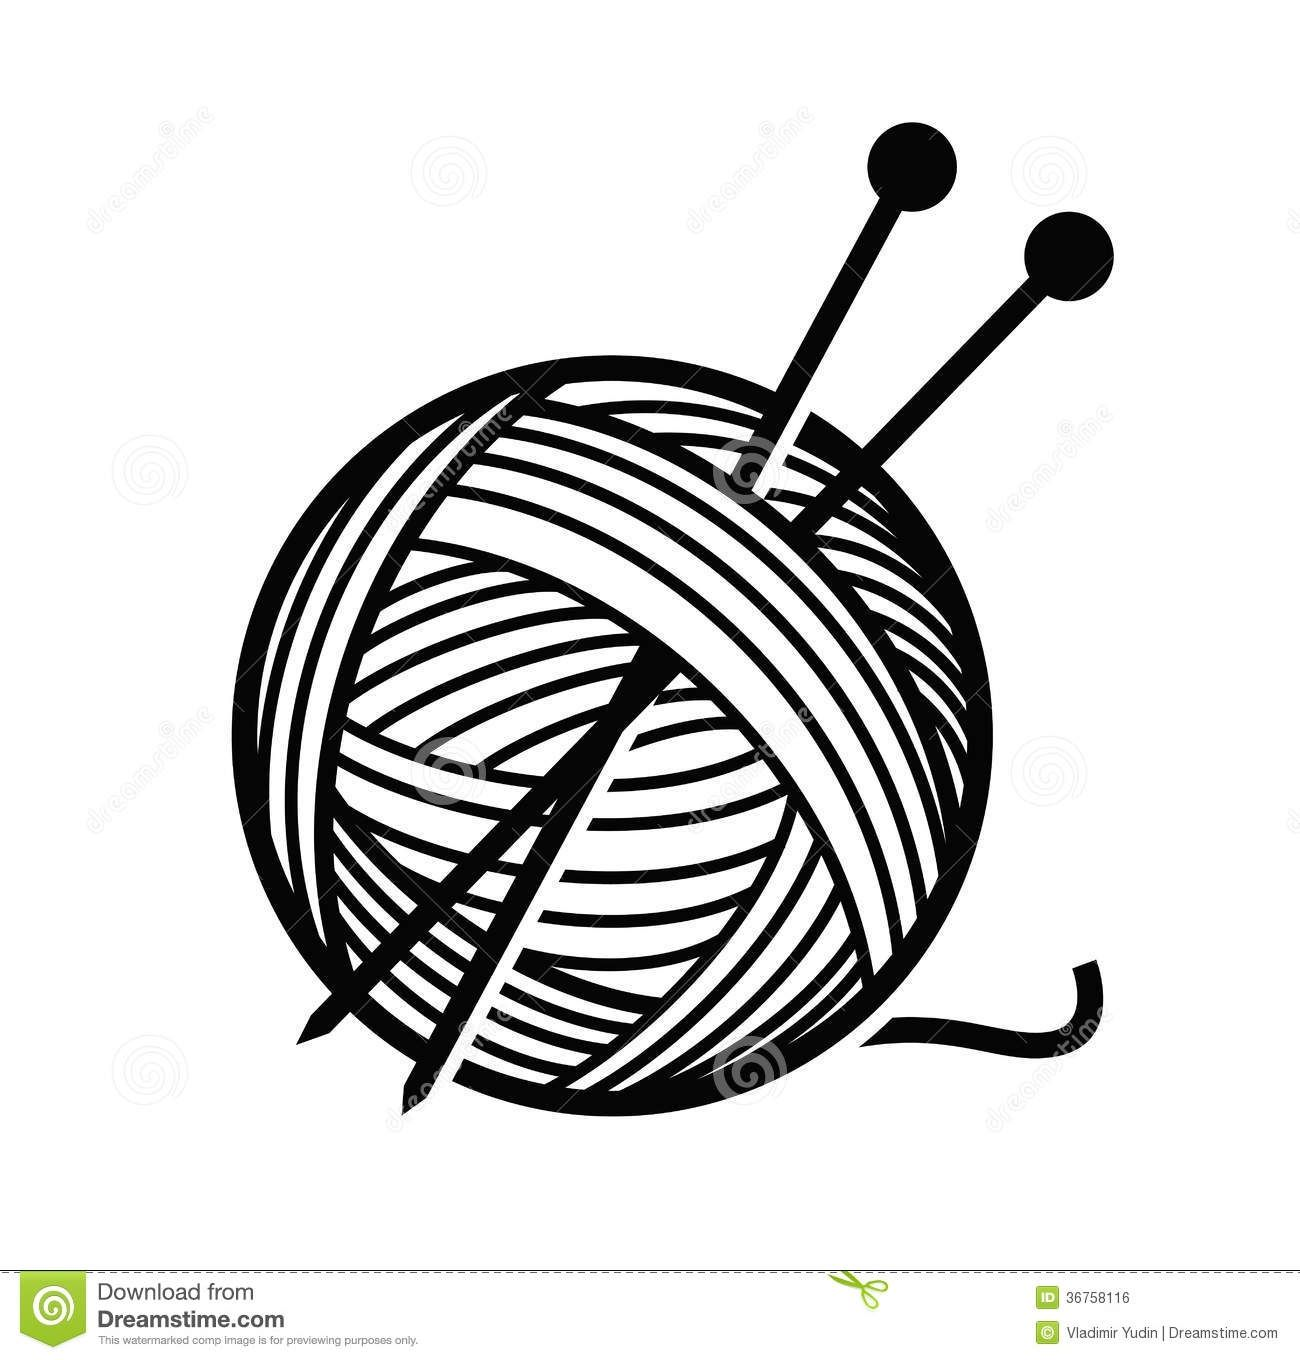 svg royalty free library Clipart yarn and knitting needles.  knit for free